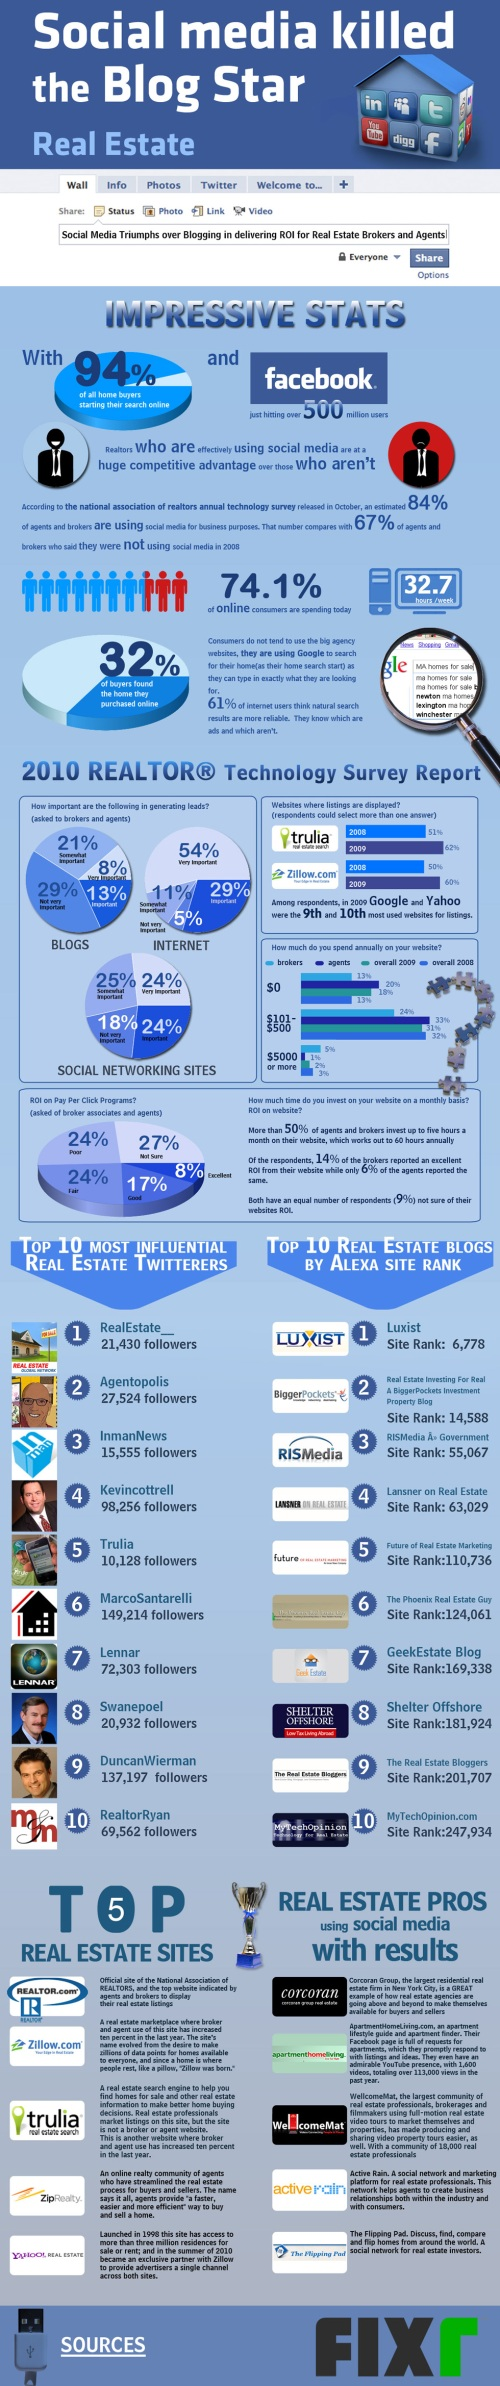 social media real estate infographic